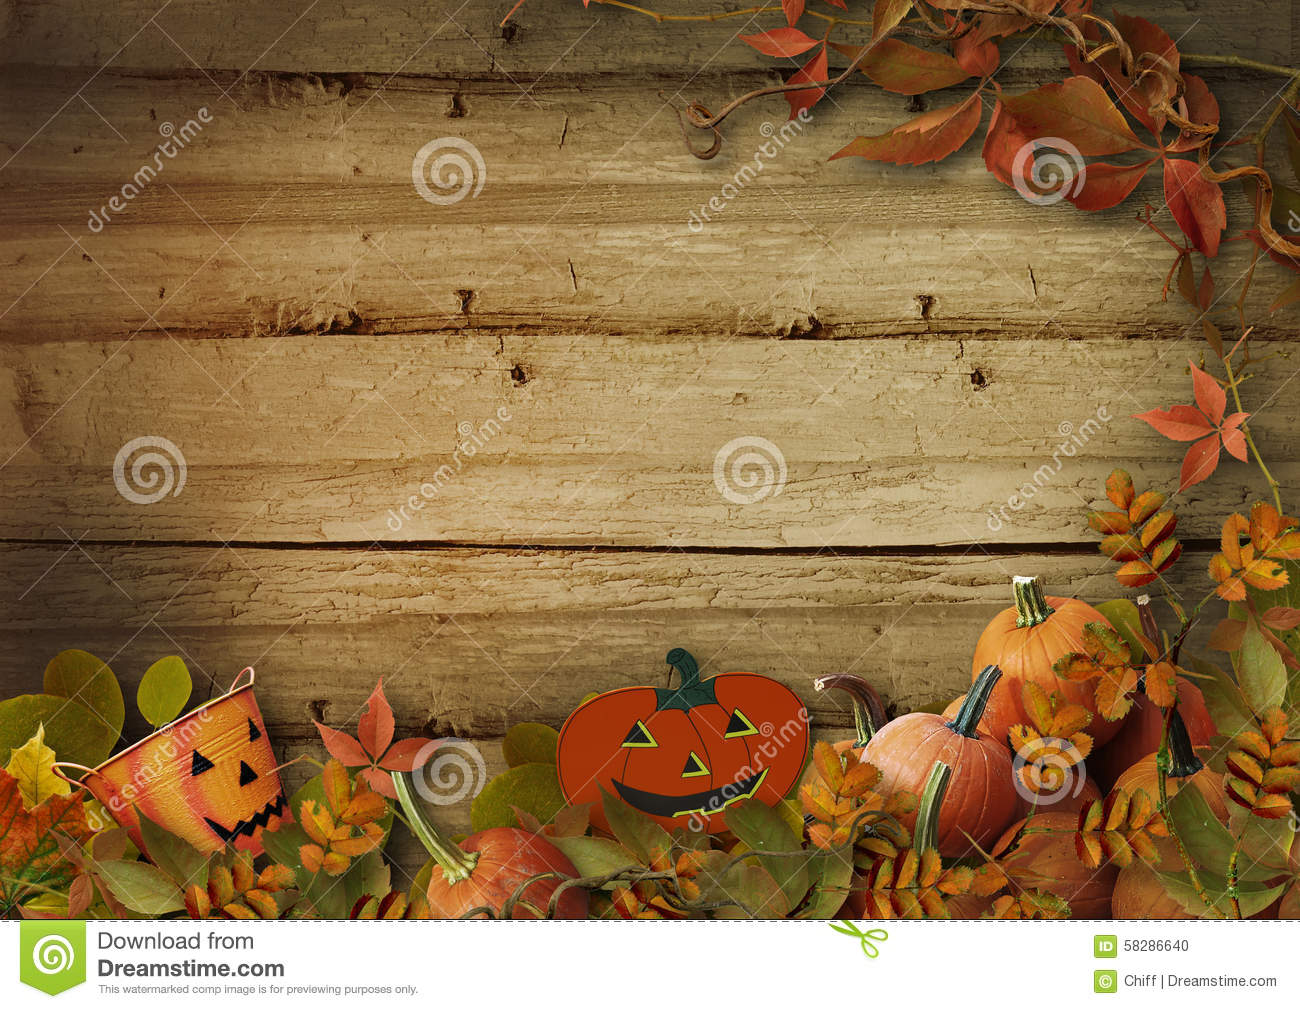 Fall Autumn Wallpaper Free Halloween Pumpkins And Autumn Leaves On Wooden Background